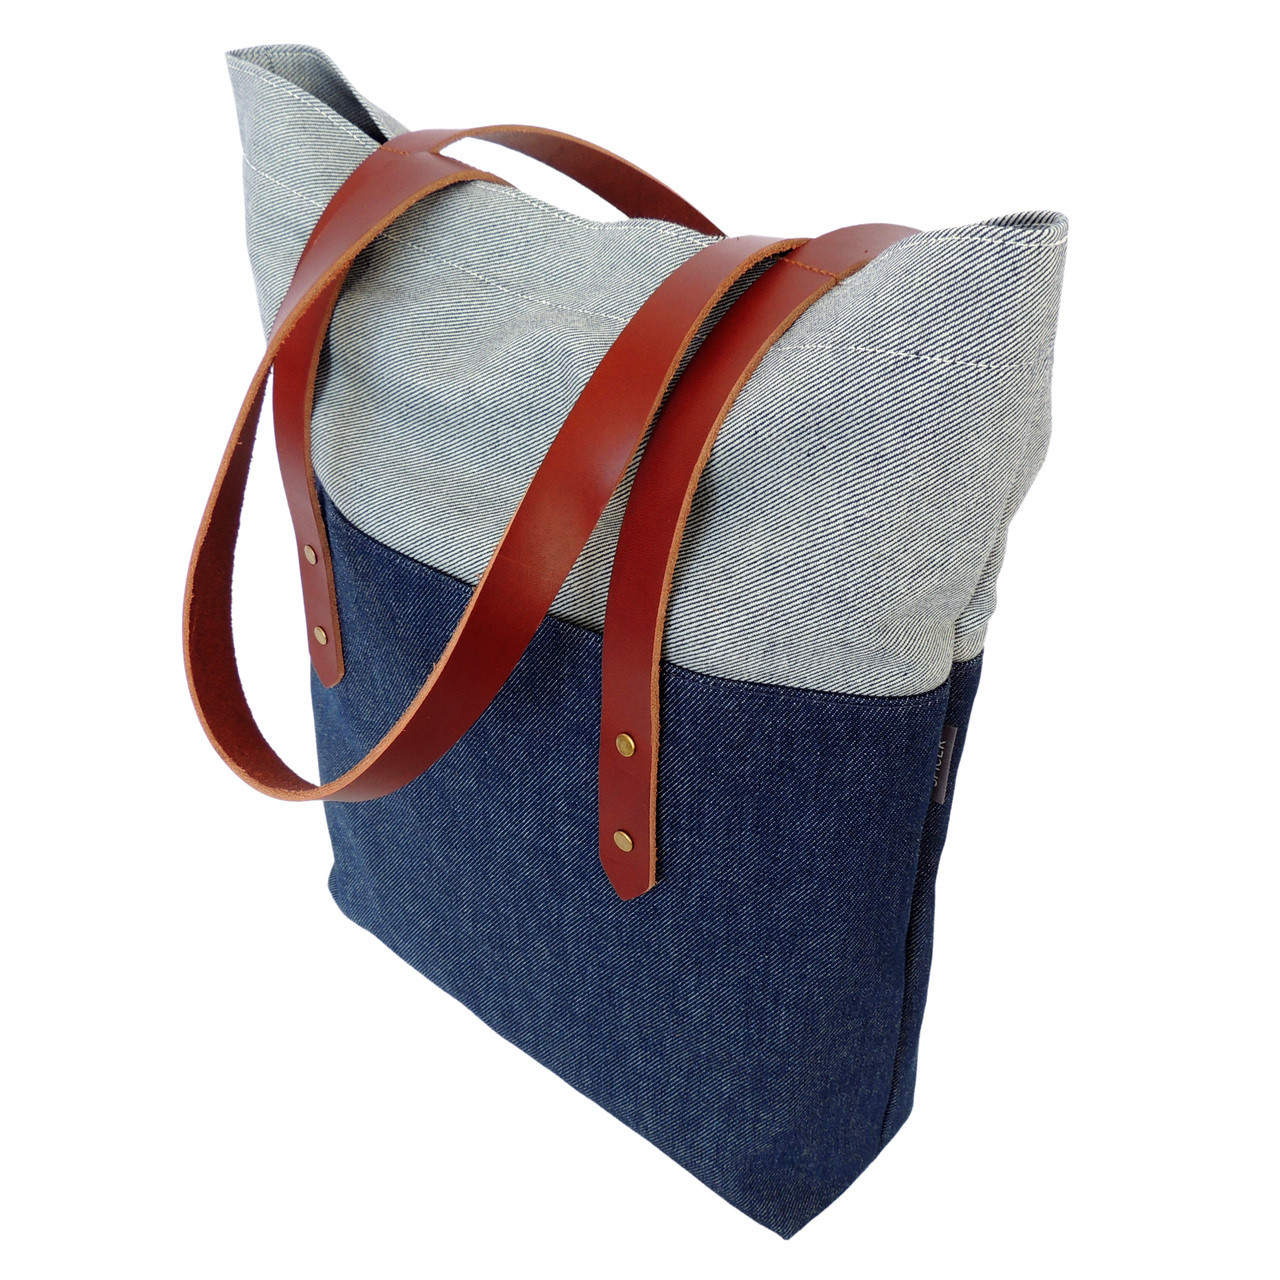 Big Boot Tote in Denim